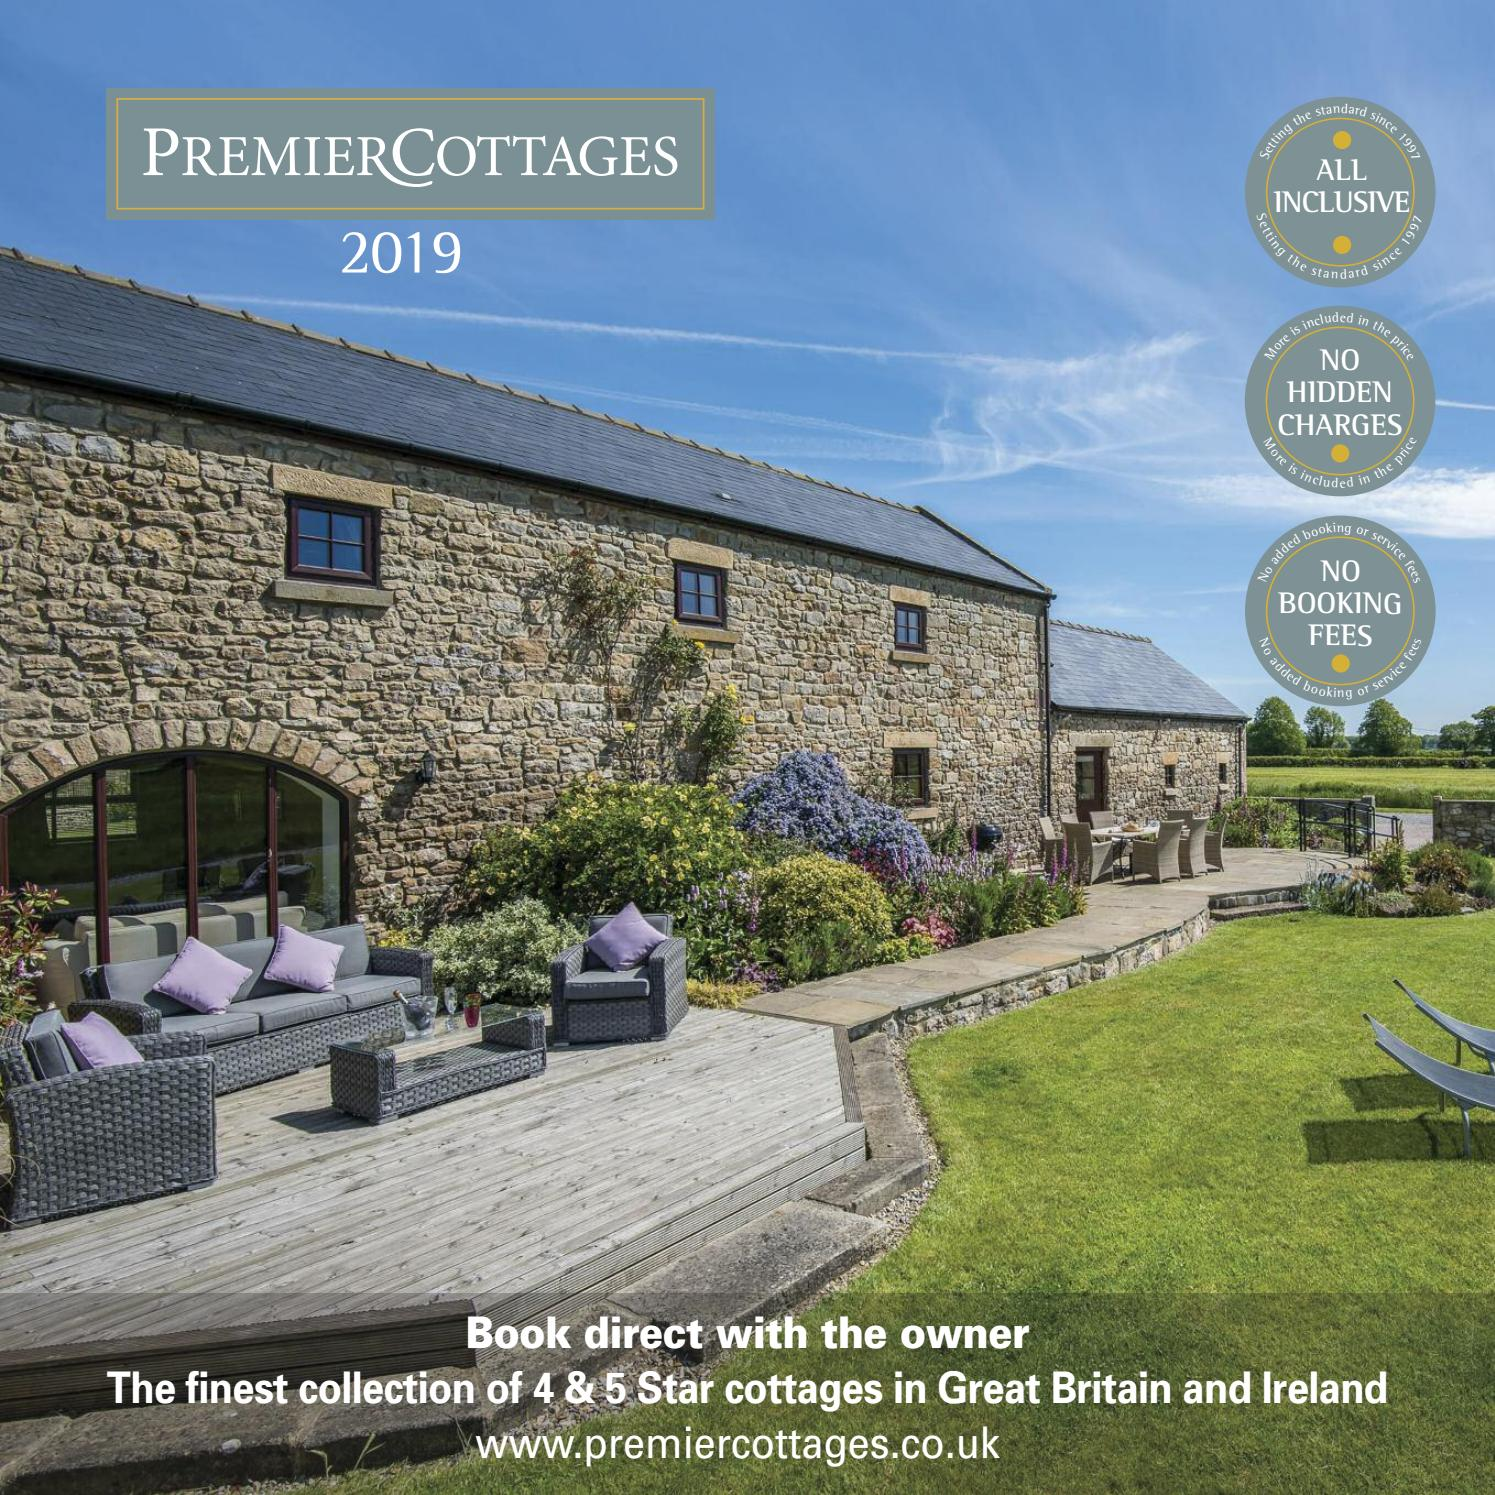 Remarkable Premier Cottages Brochure 2019 By Web Admin Issuu Download Free Architecture Designs Scobabritishbridgeorg